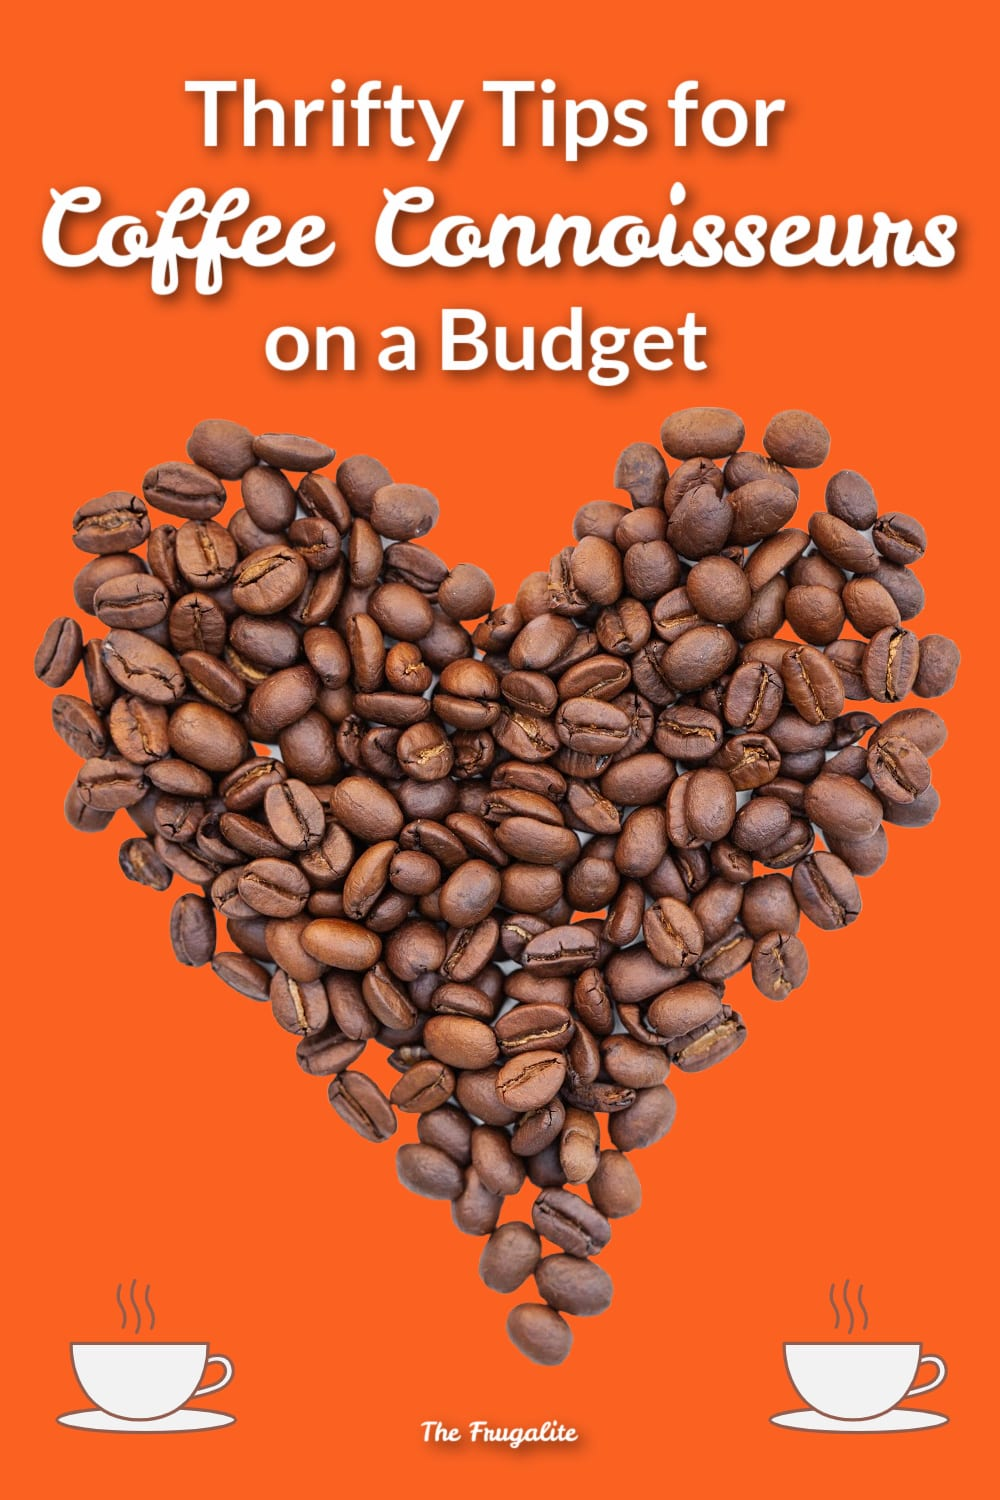 Tips For Coffee Connoisseurs on a Budget